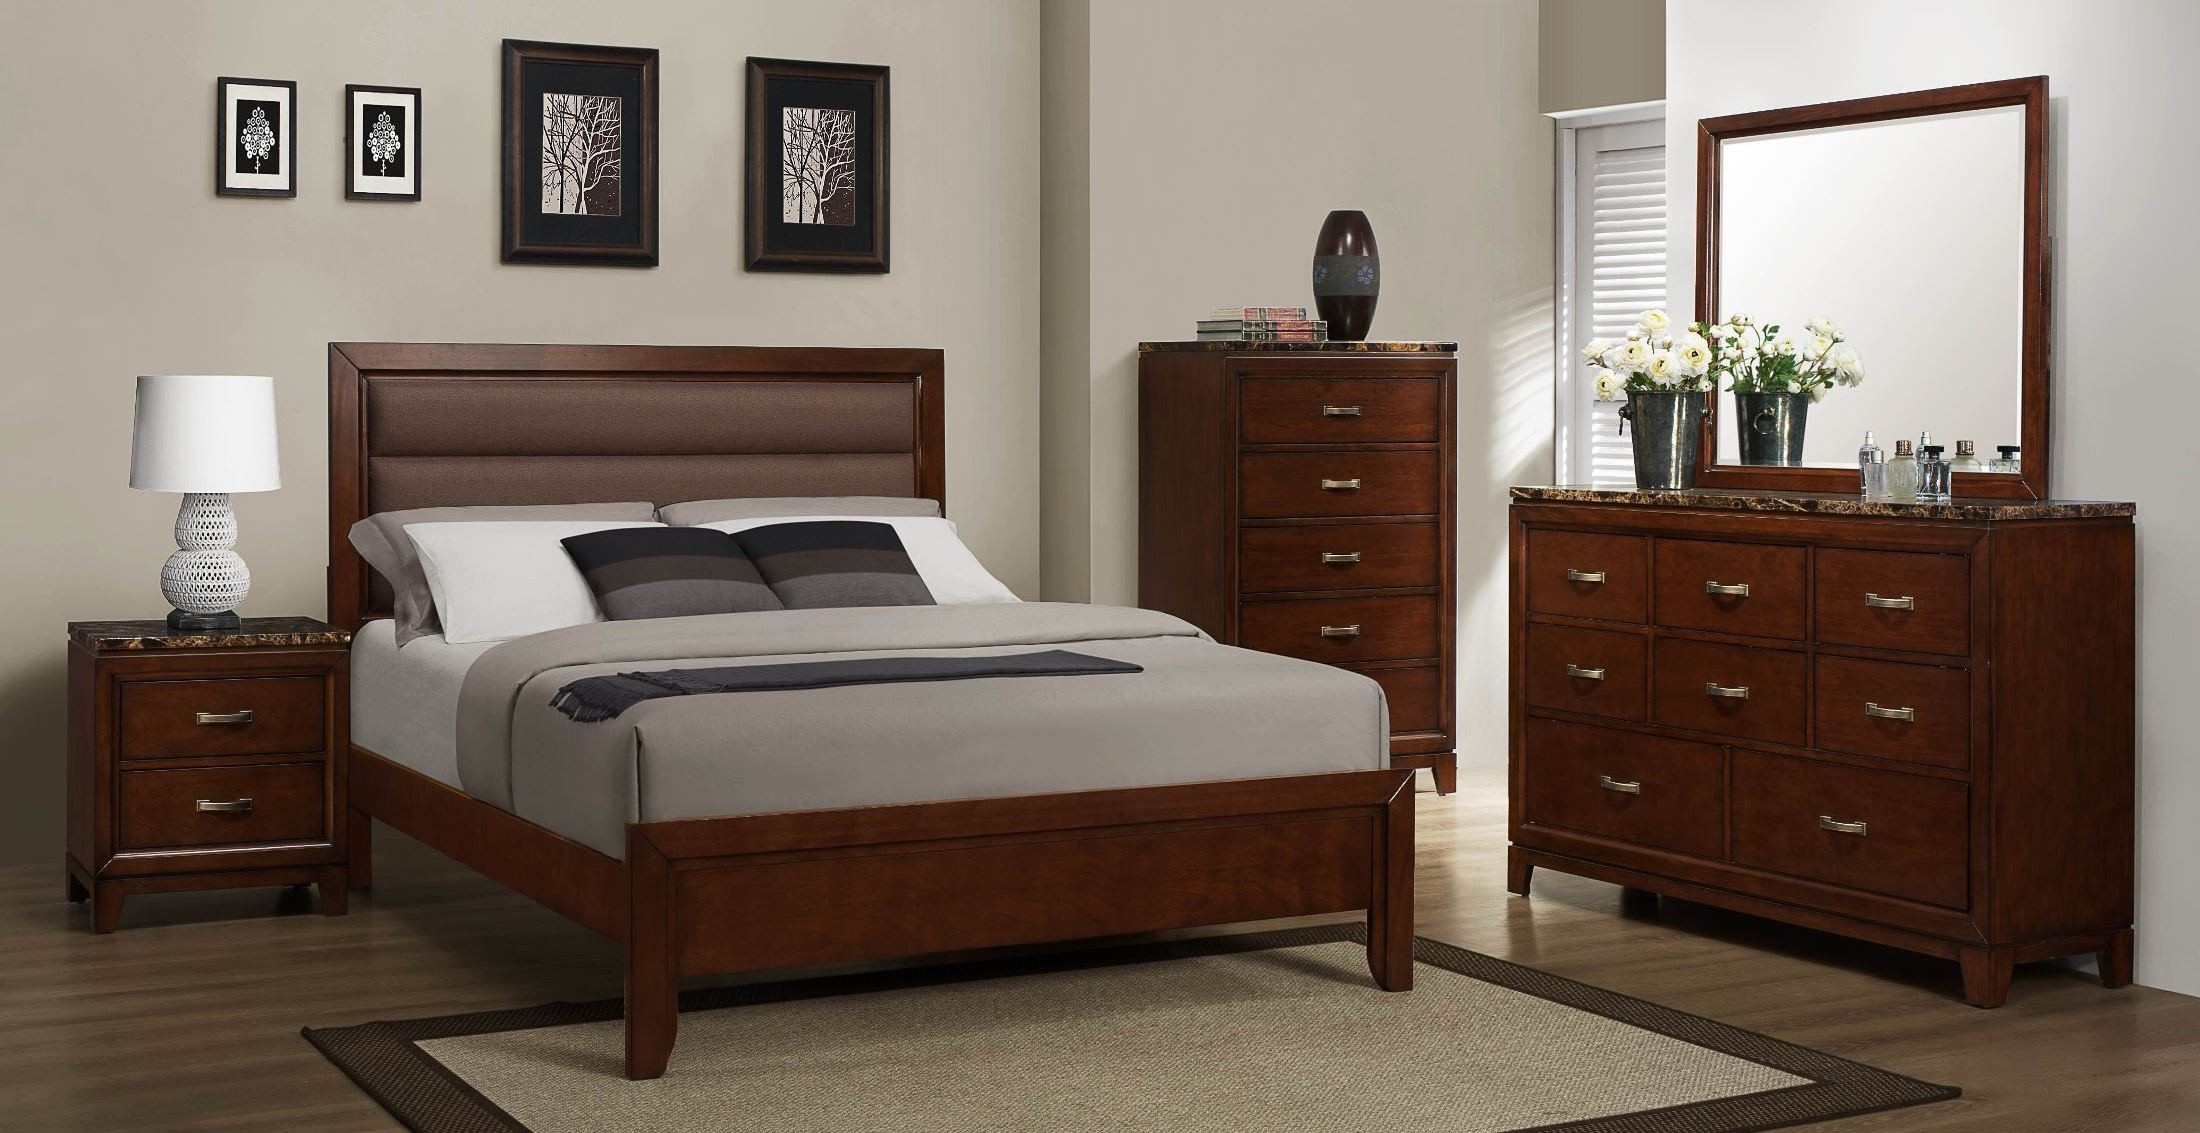 Ottowa Panel Bedroom Set From Homelegance 2112 1 Coleman Furniture